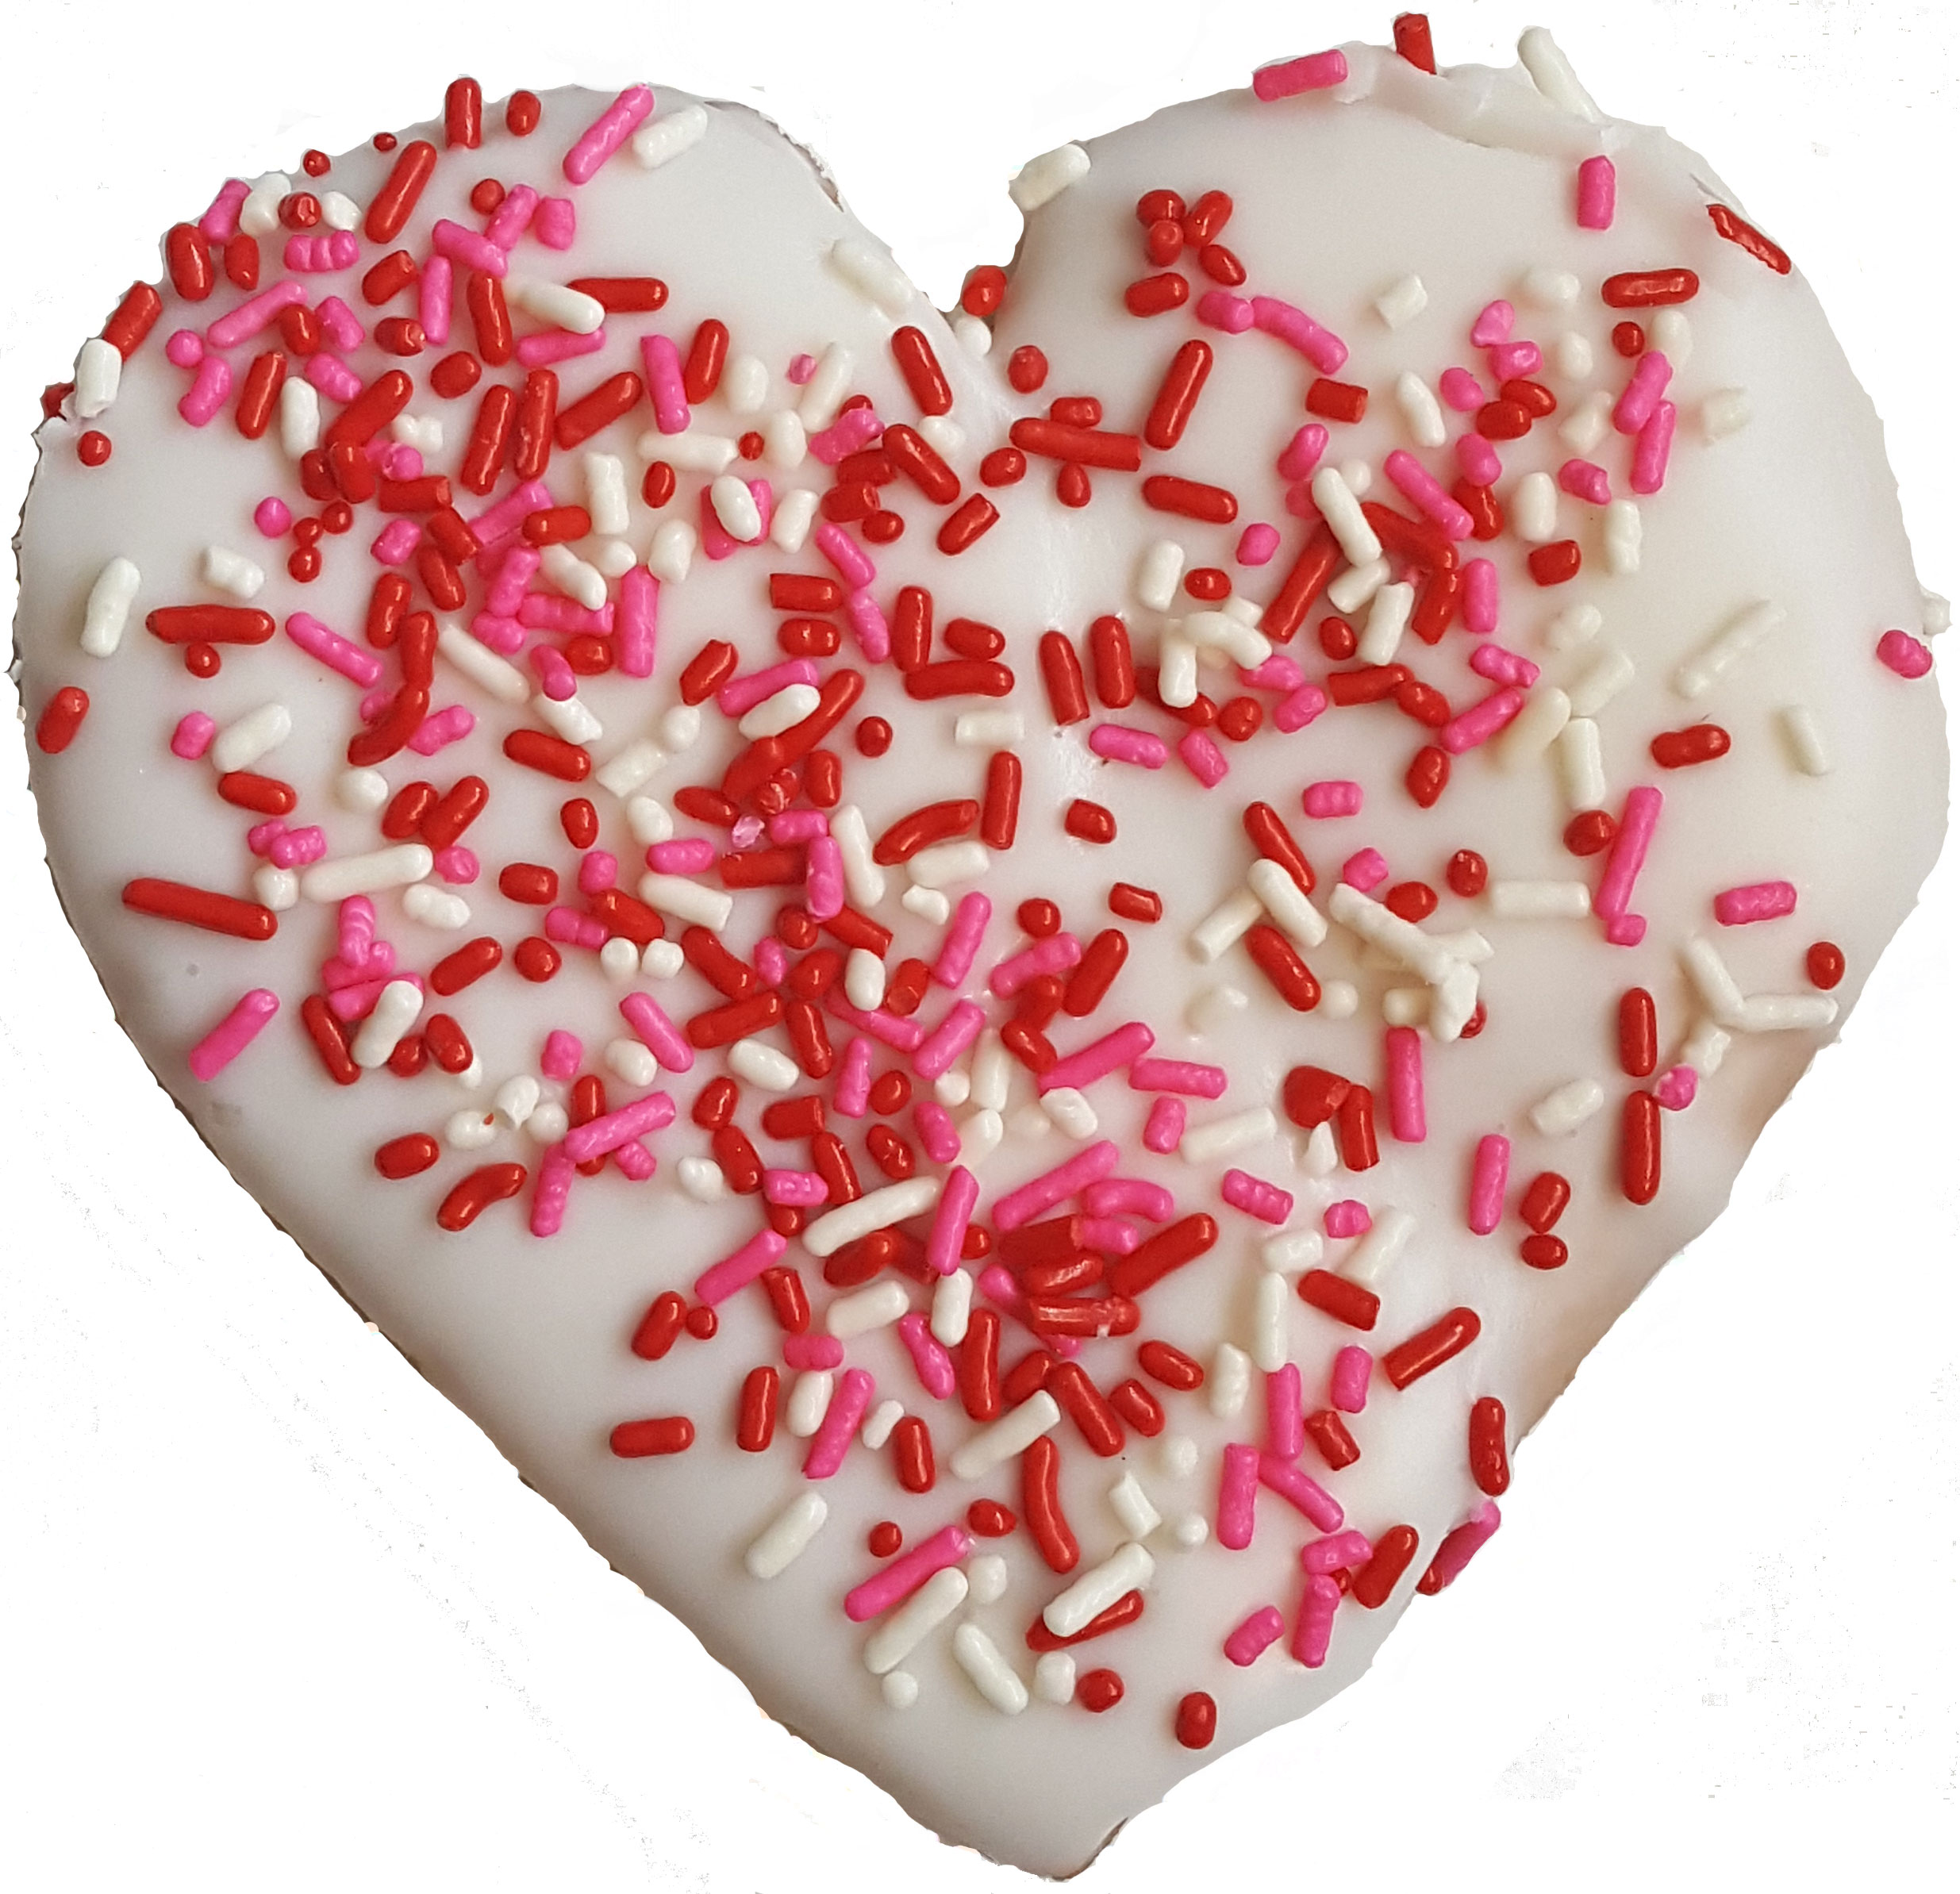 Heart Cookie with Sprinkles